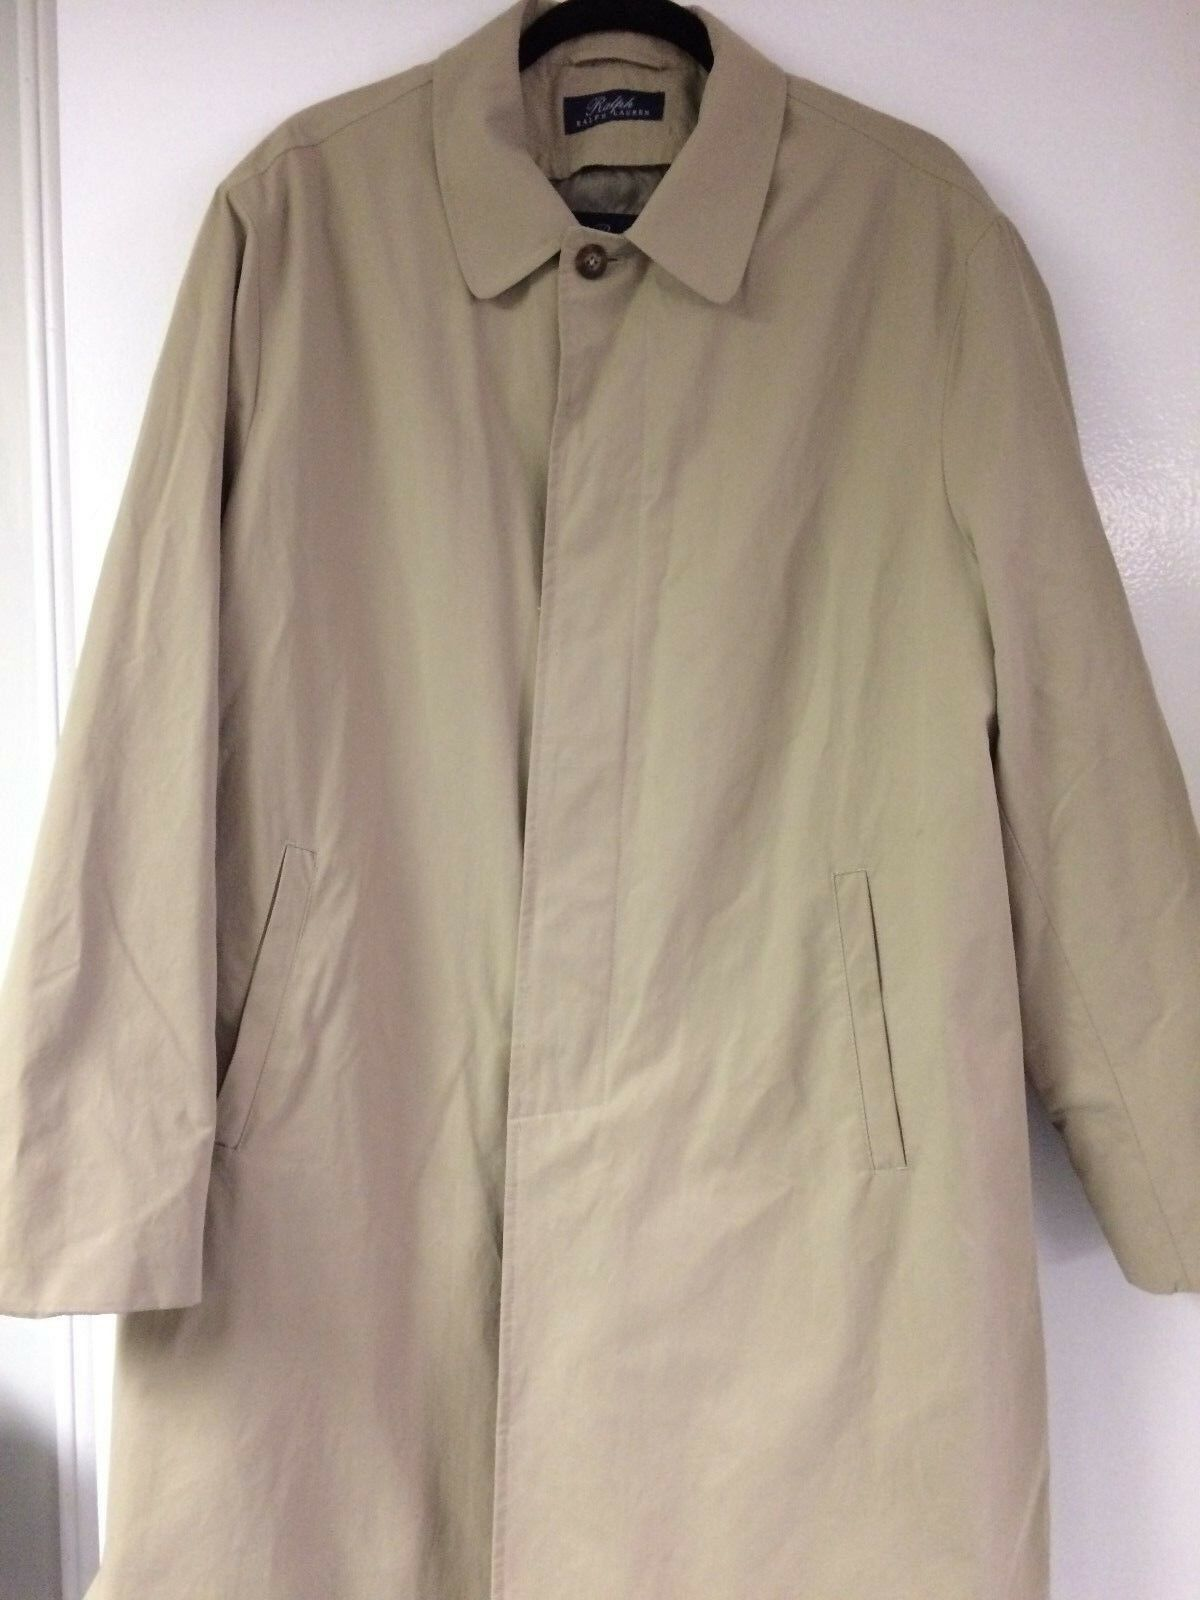 Ralph Lauren Trench Beltless Uomo Trench Lauren Cappotto Lana Blend Removable Liner Tan 44R NICE! 7025af